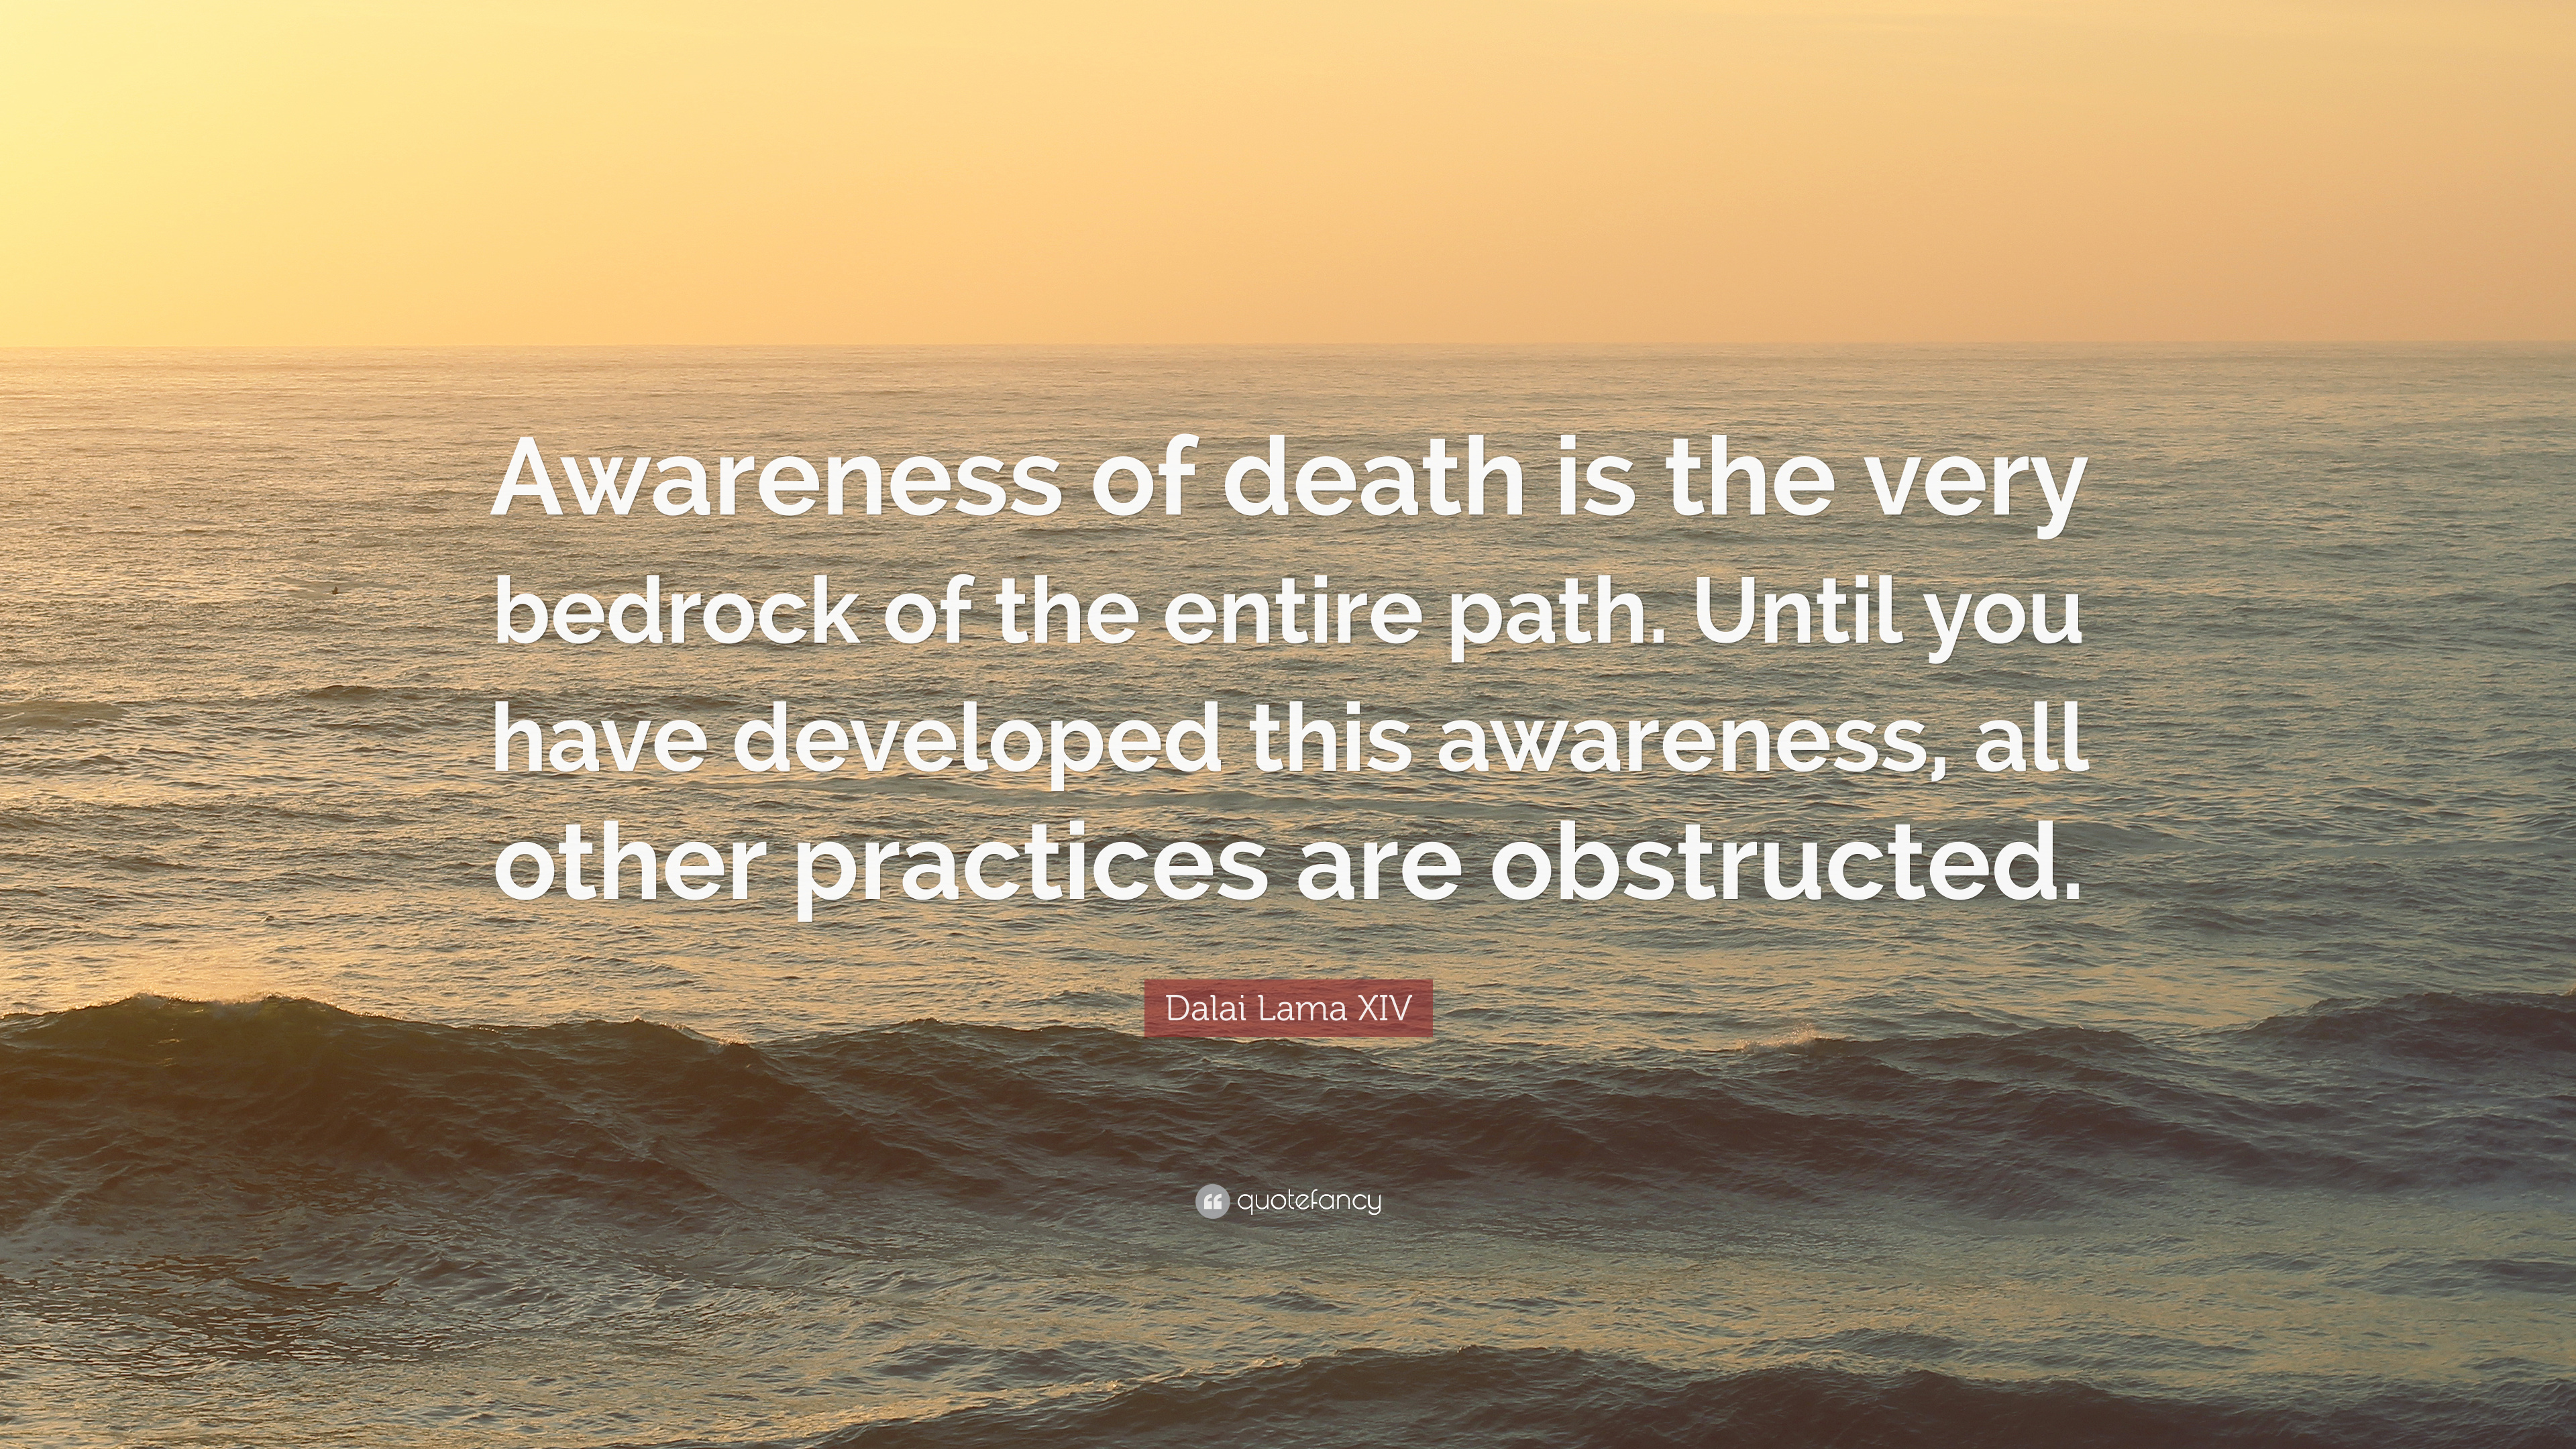 Dalai Lama Xiv Quote Awareness Of Death Is The Very Bedrock Of The